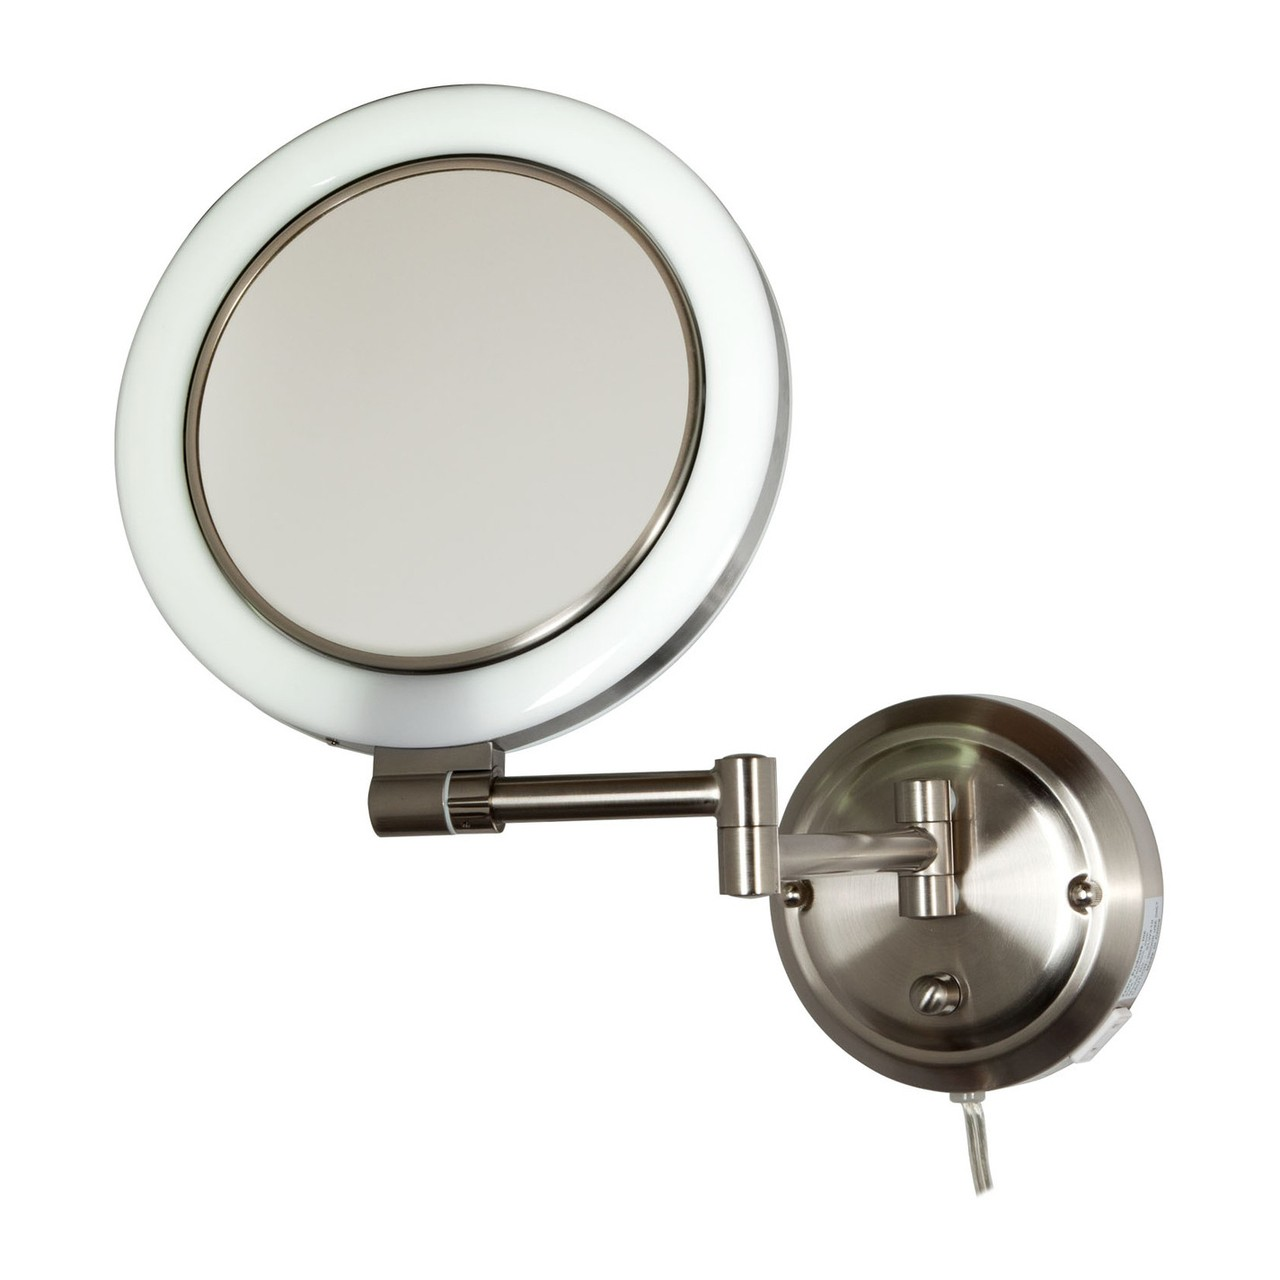 Wall Mounted Swivel Lamps : Zadro Dual-Sided Surround Light Swivel Wall Mount Mirror 1X/10X